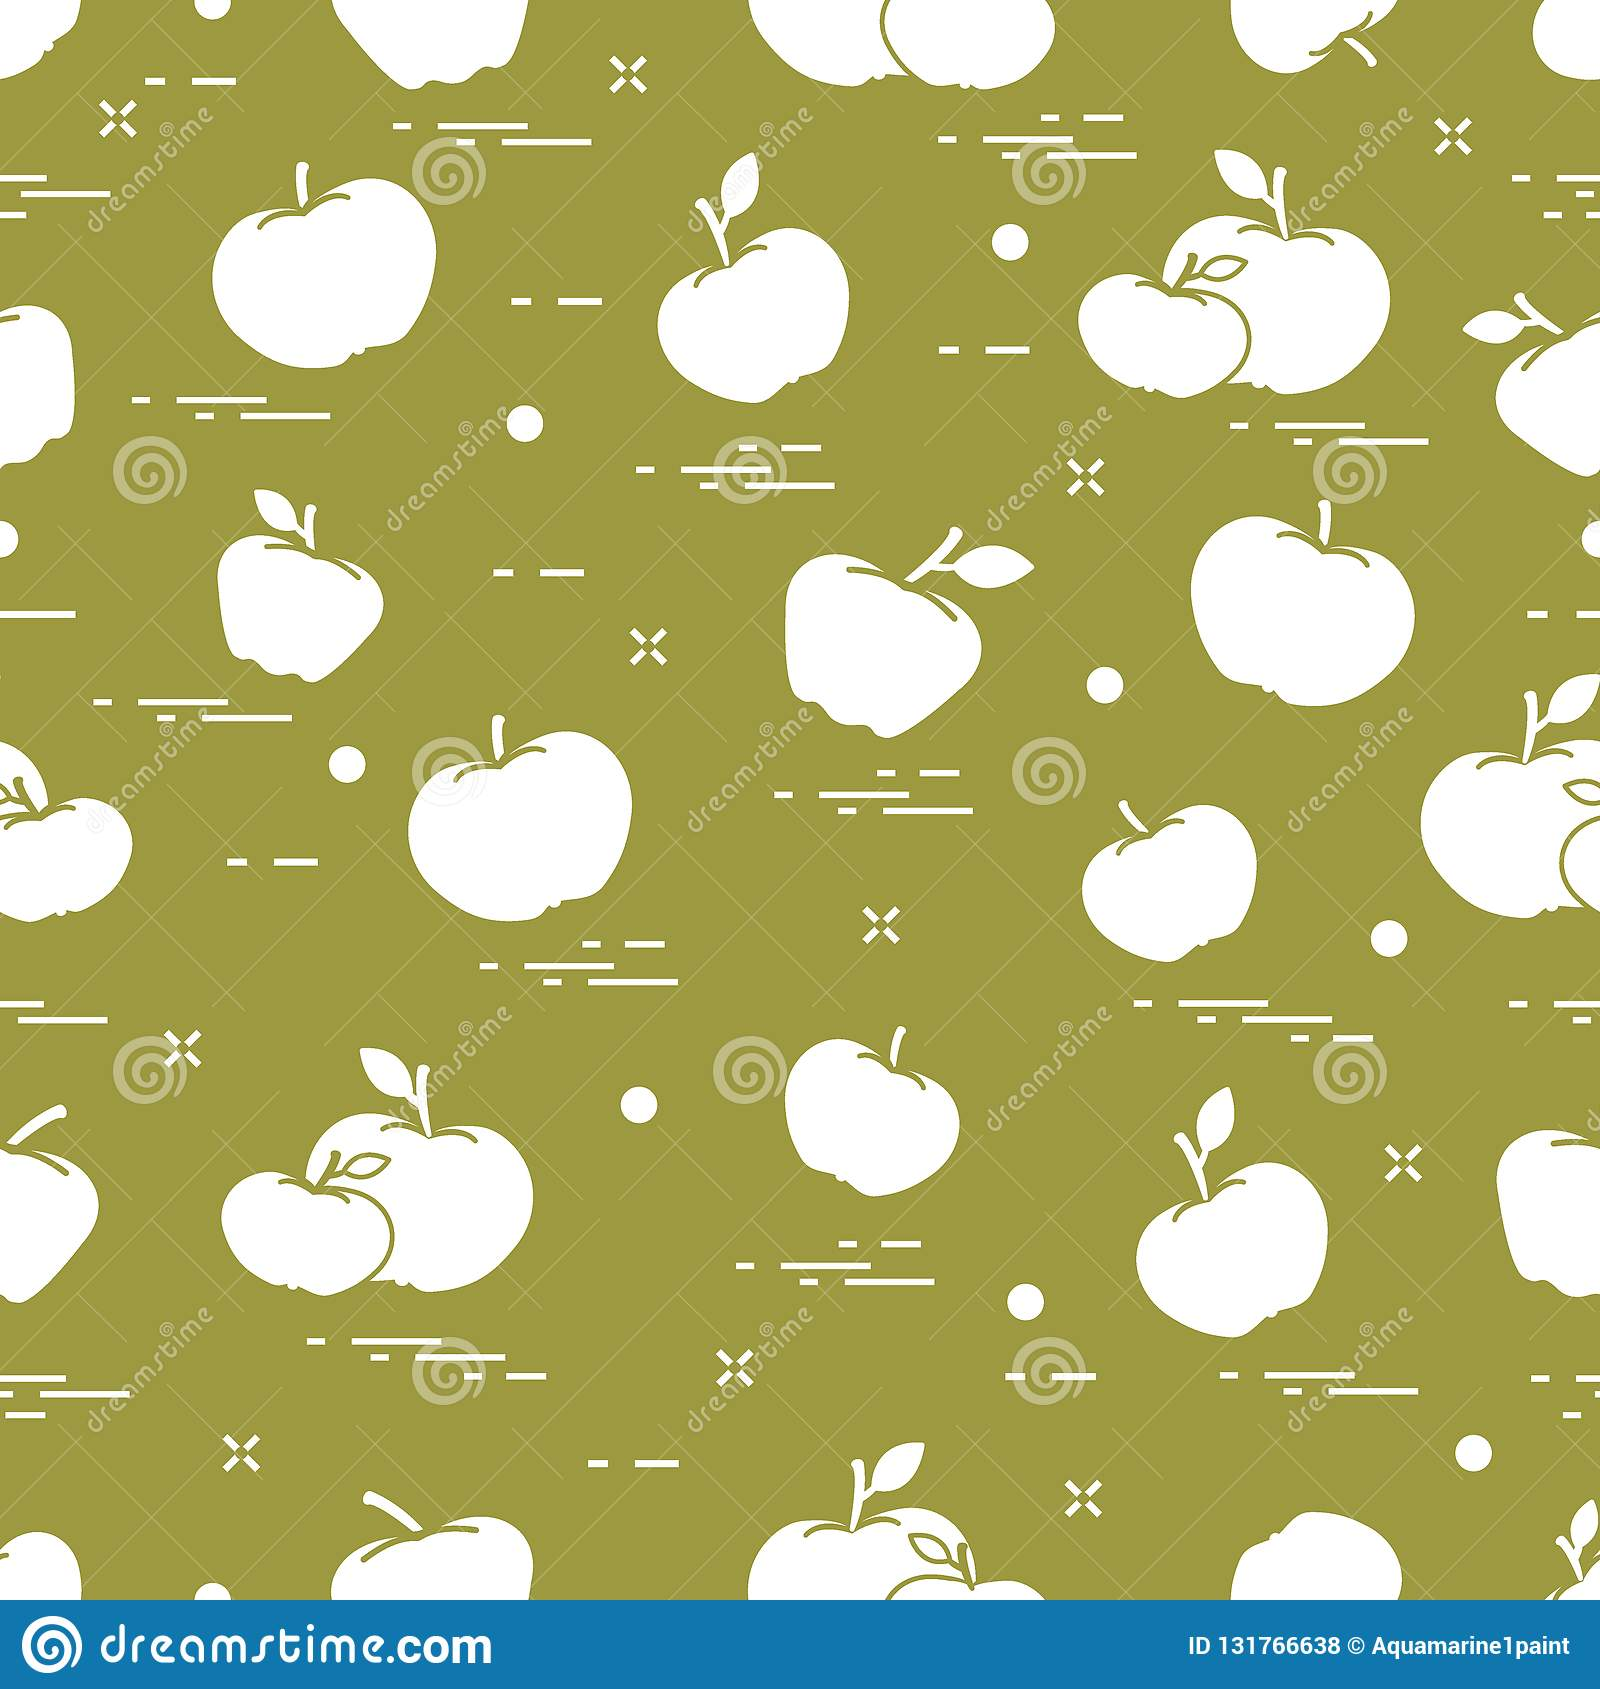 Apples juicy fruit. Seamless pattern. Design for announcement, advertisement, banner or print